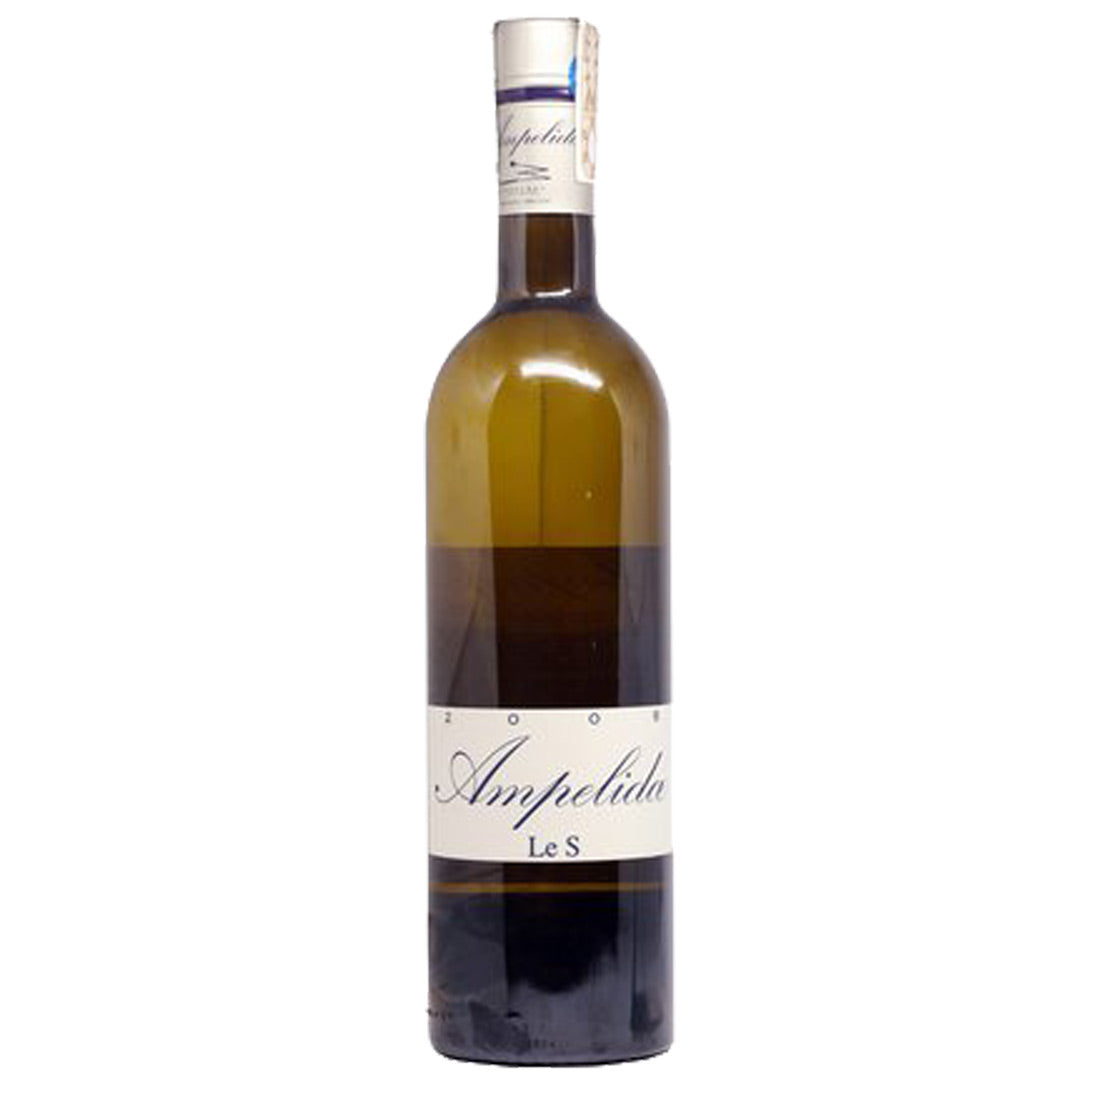 Ampelidae Le S Sauvignon 2008 - 750ml White Wine - Drinkka Alcohol Delivery Best Whiskey Wine Gin Beer Vodkas and more for Parties in Makati BGC Fort and Manila | Bevtools Bar and Beverage Tools